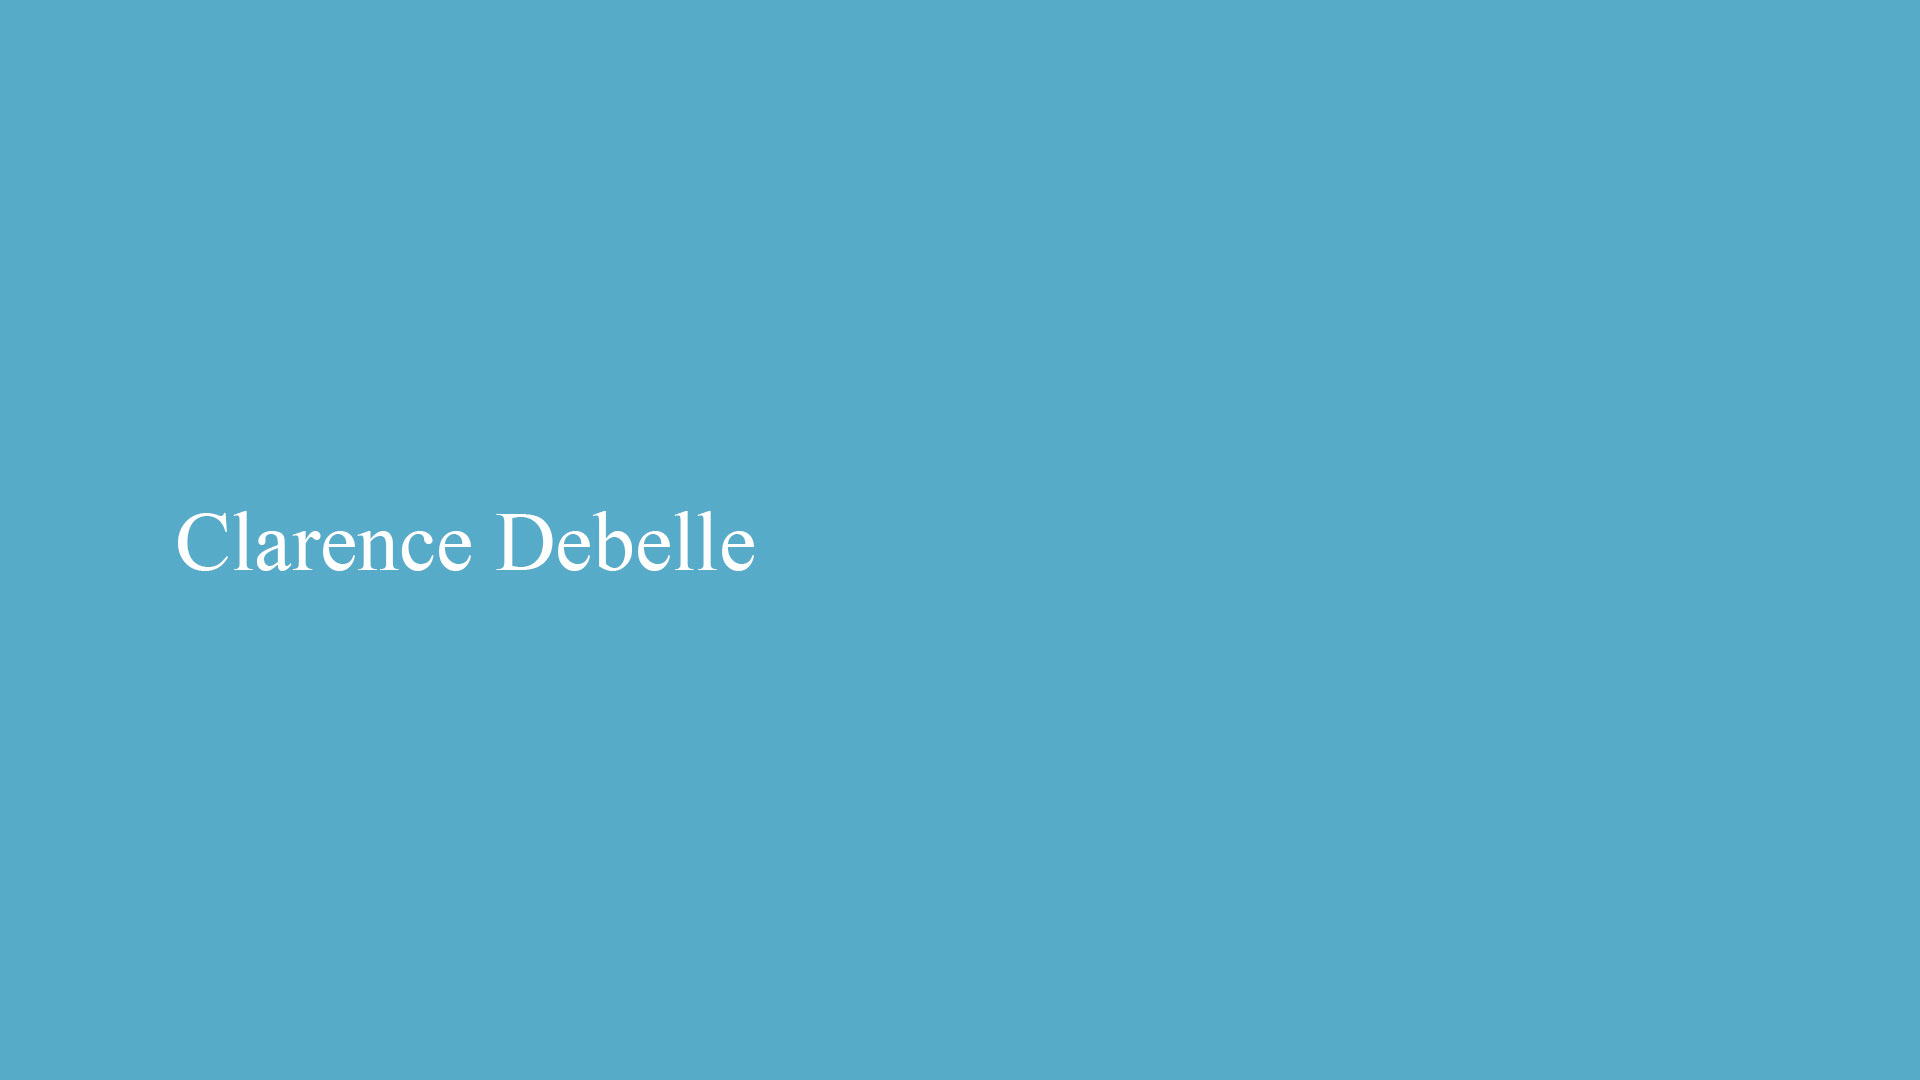 graphic design and web design for clarence debelle by hiline pakistan 01